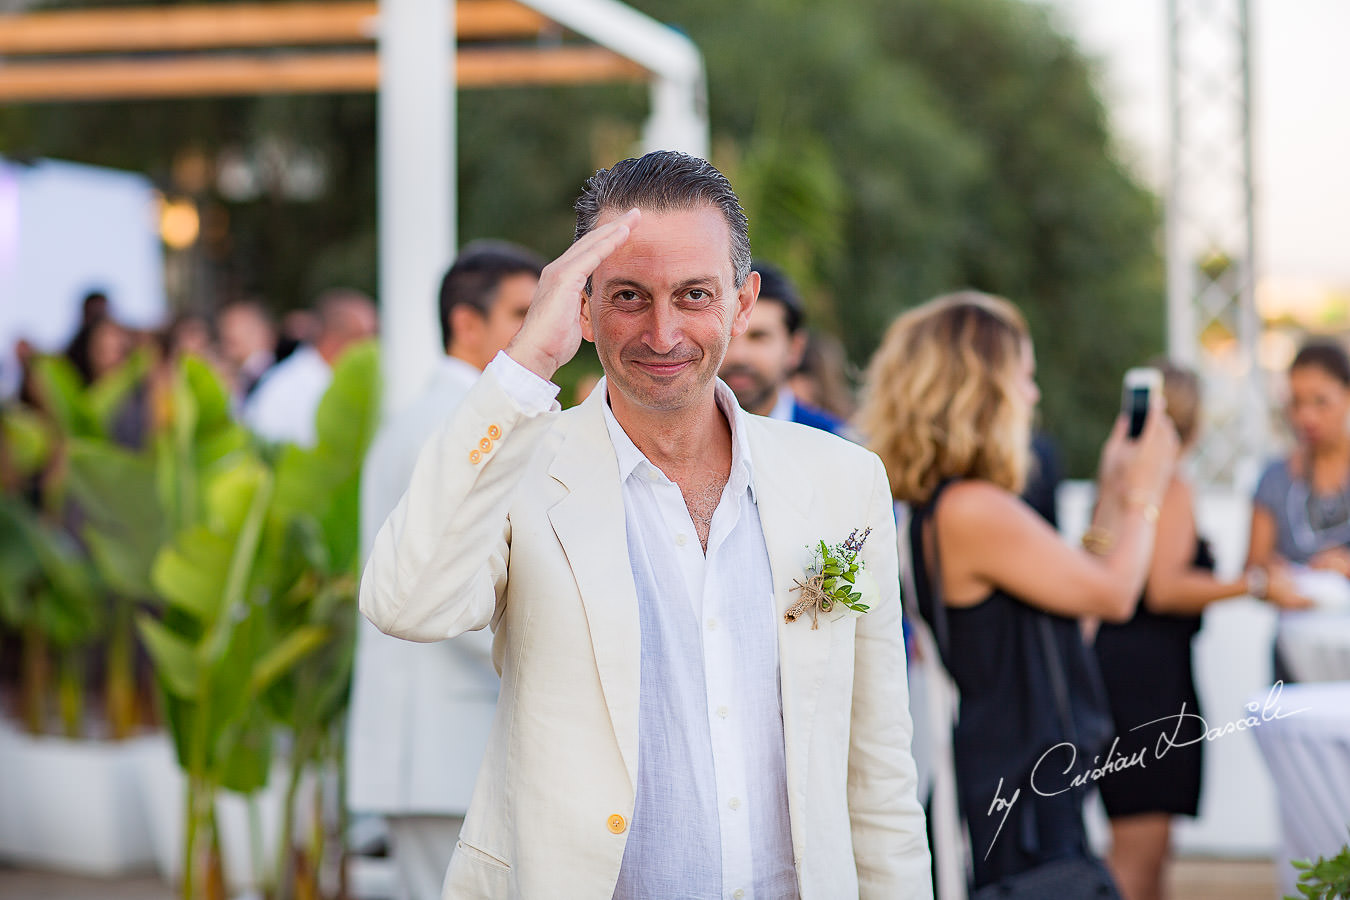 The best man saluting, moments captured during a wedding photography at the Lighthouse Limassol, by Cyprus Photographer Cristian Dascalu.